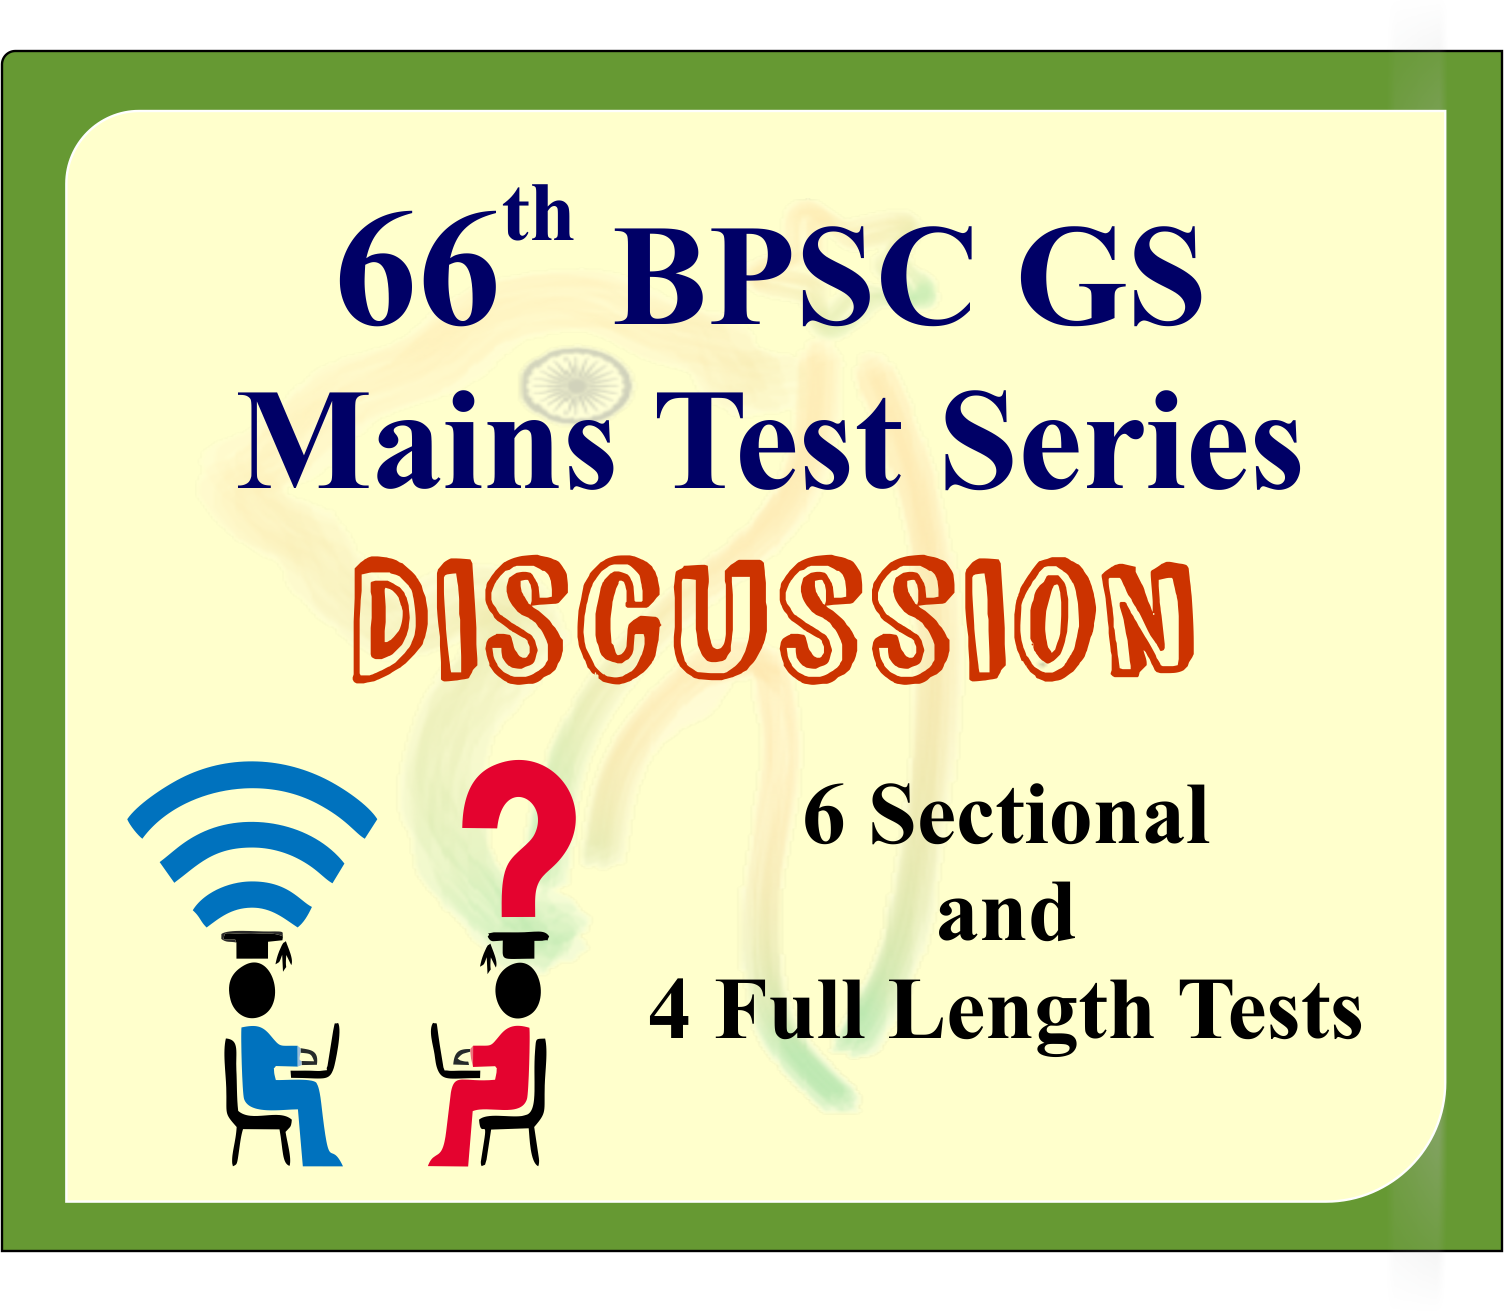 66th BPSC GS Mains Test Discussion